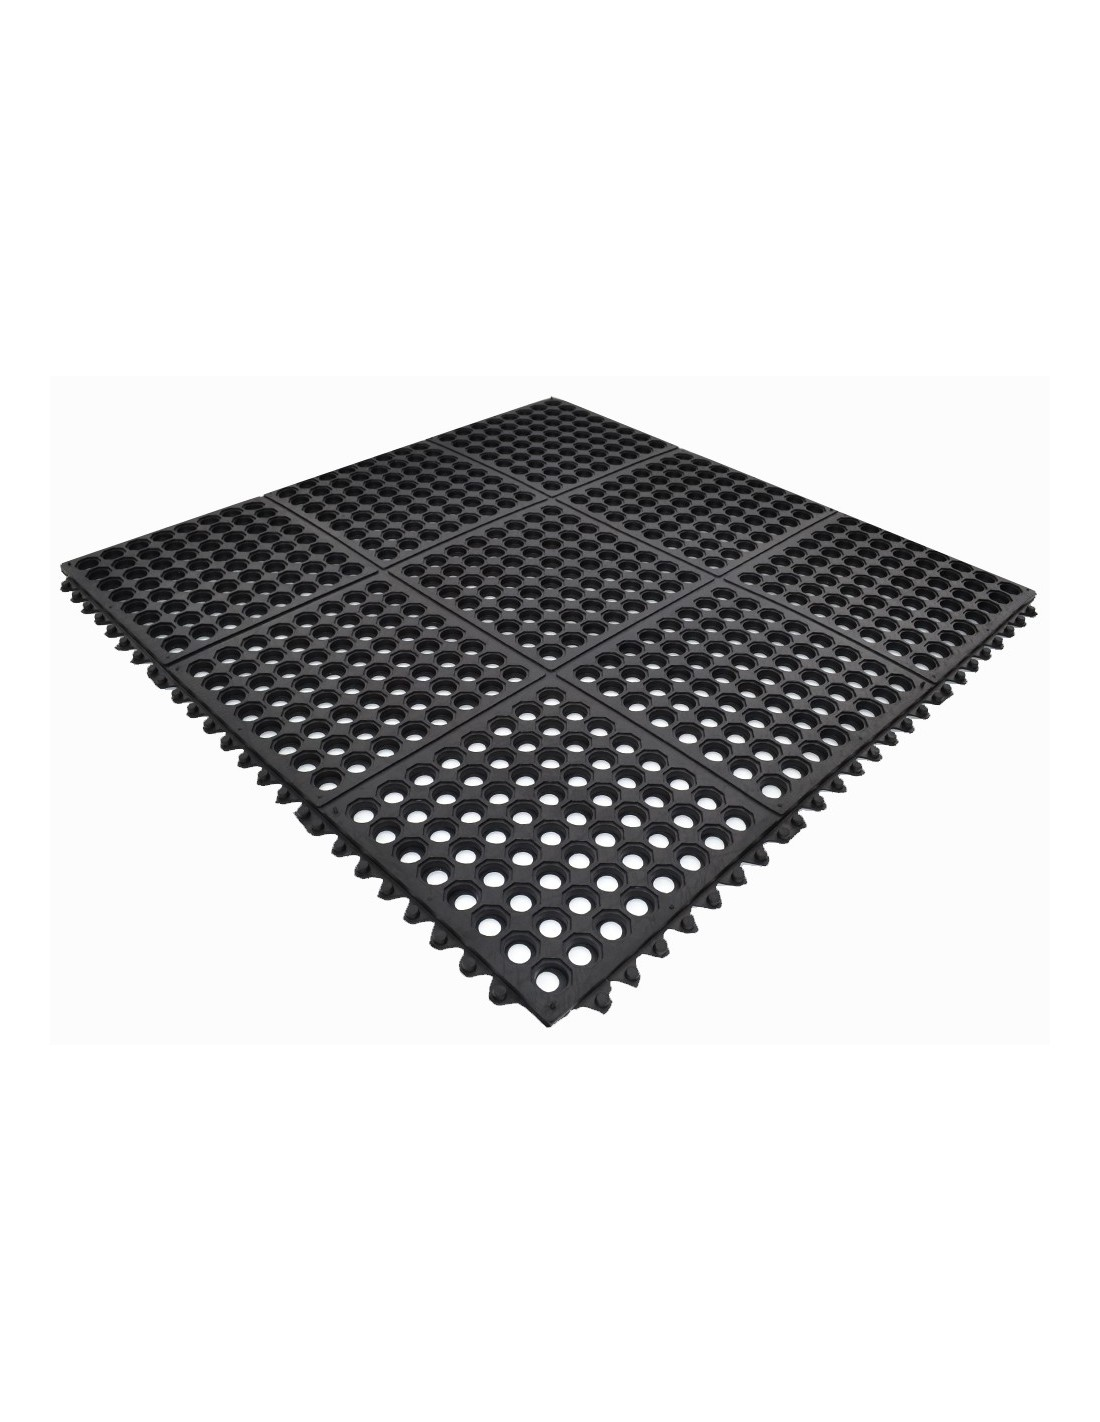 Interlocking rubber mats